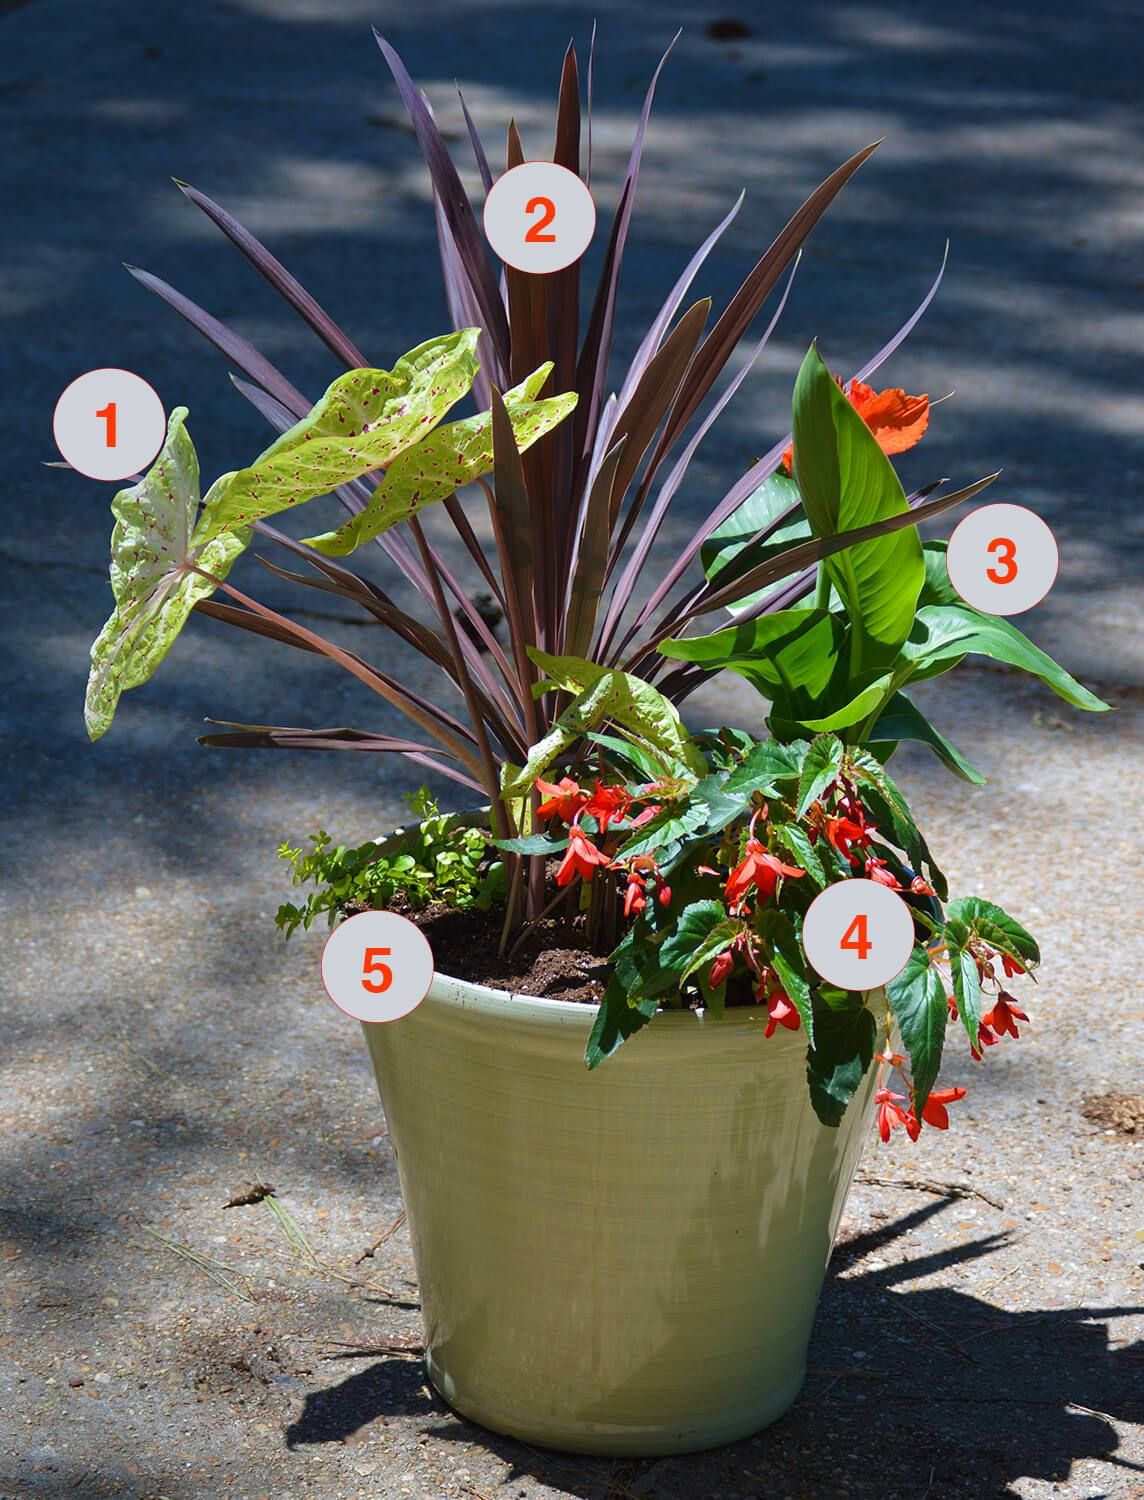 Tropical Plants for Summer Color is part of Container garden Arrangements - Red, orange, yellow, and lime green imbue the feeling of the tropics  and in a container garden inspired by the plants and colors of the region  we can bring the tropics to our homes